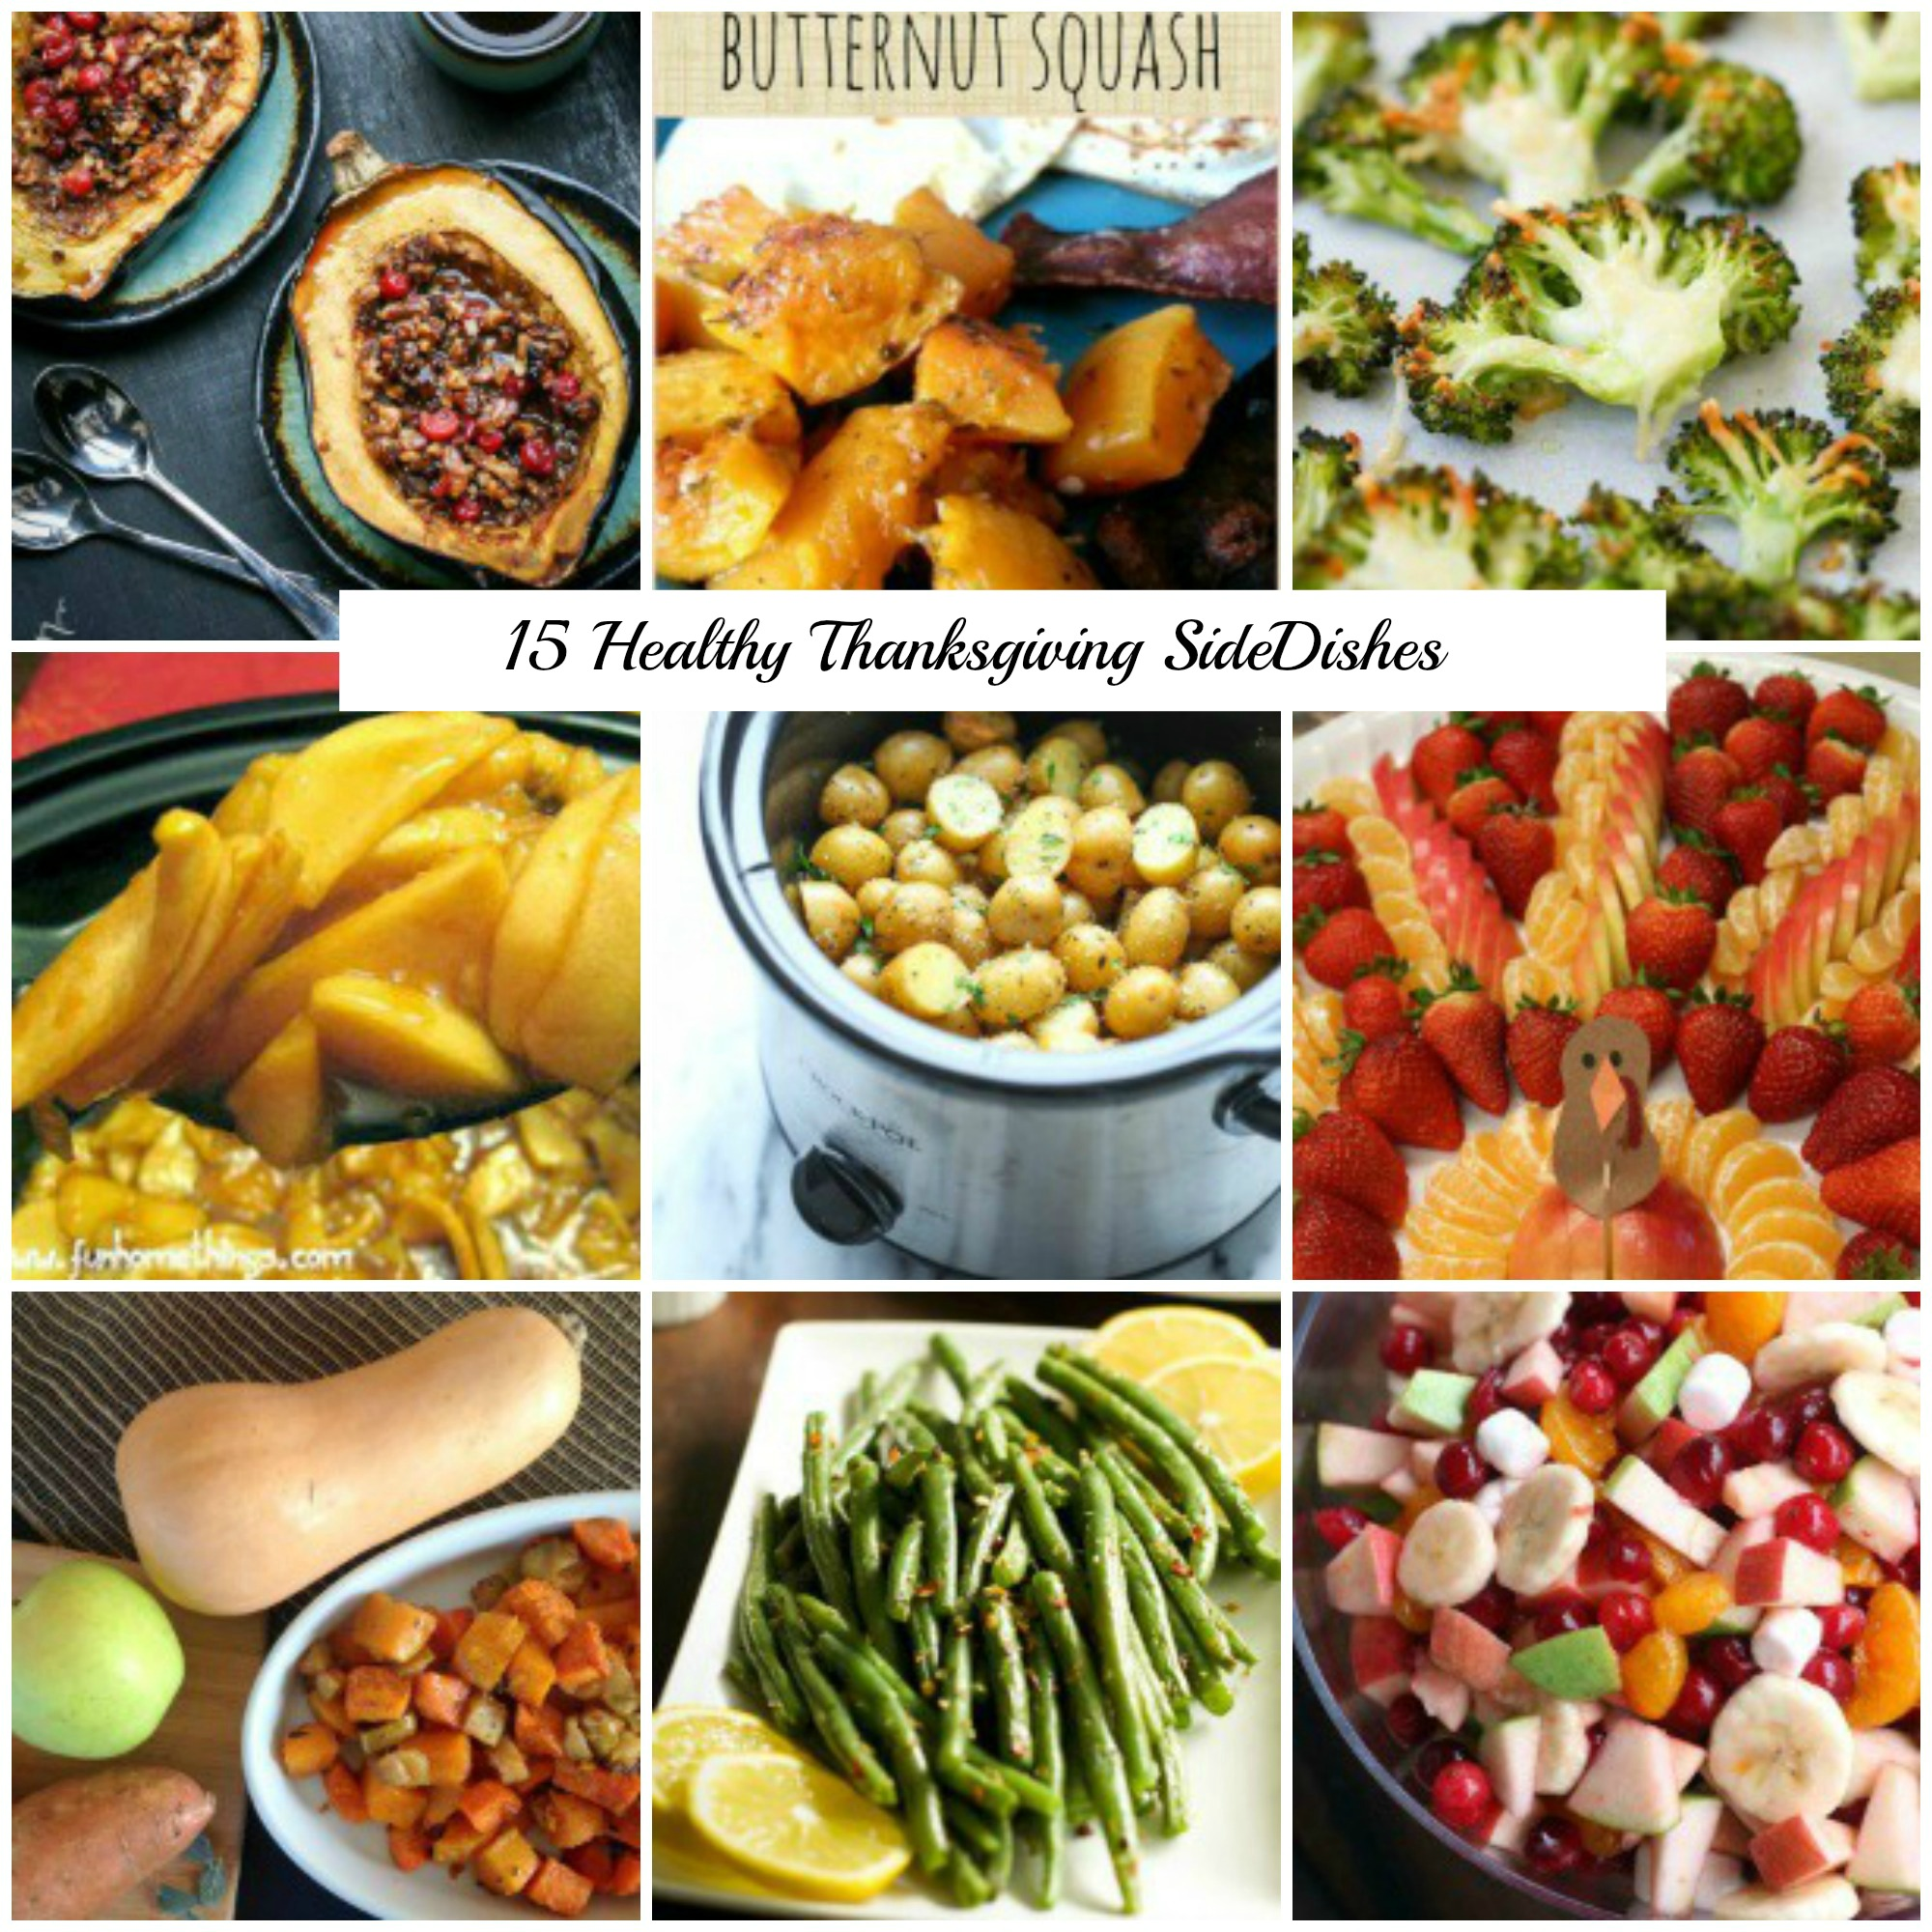 15 Healthy Thanksgiving Side Dish Recipes That Are Still